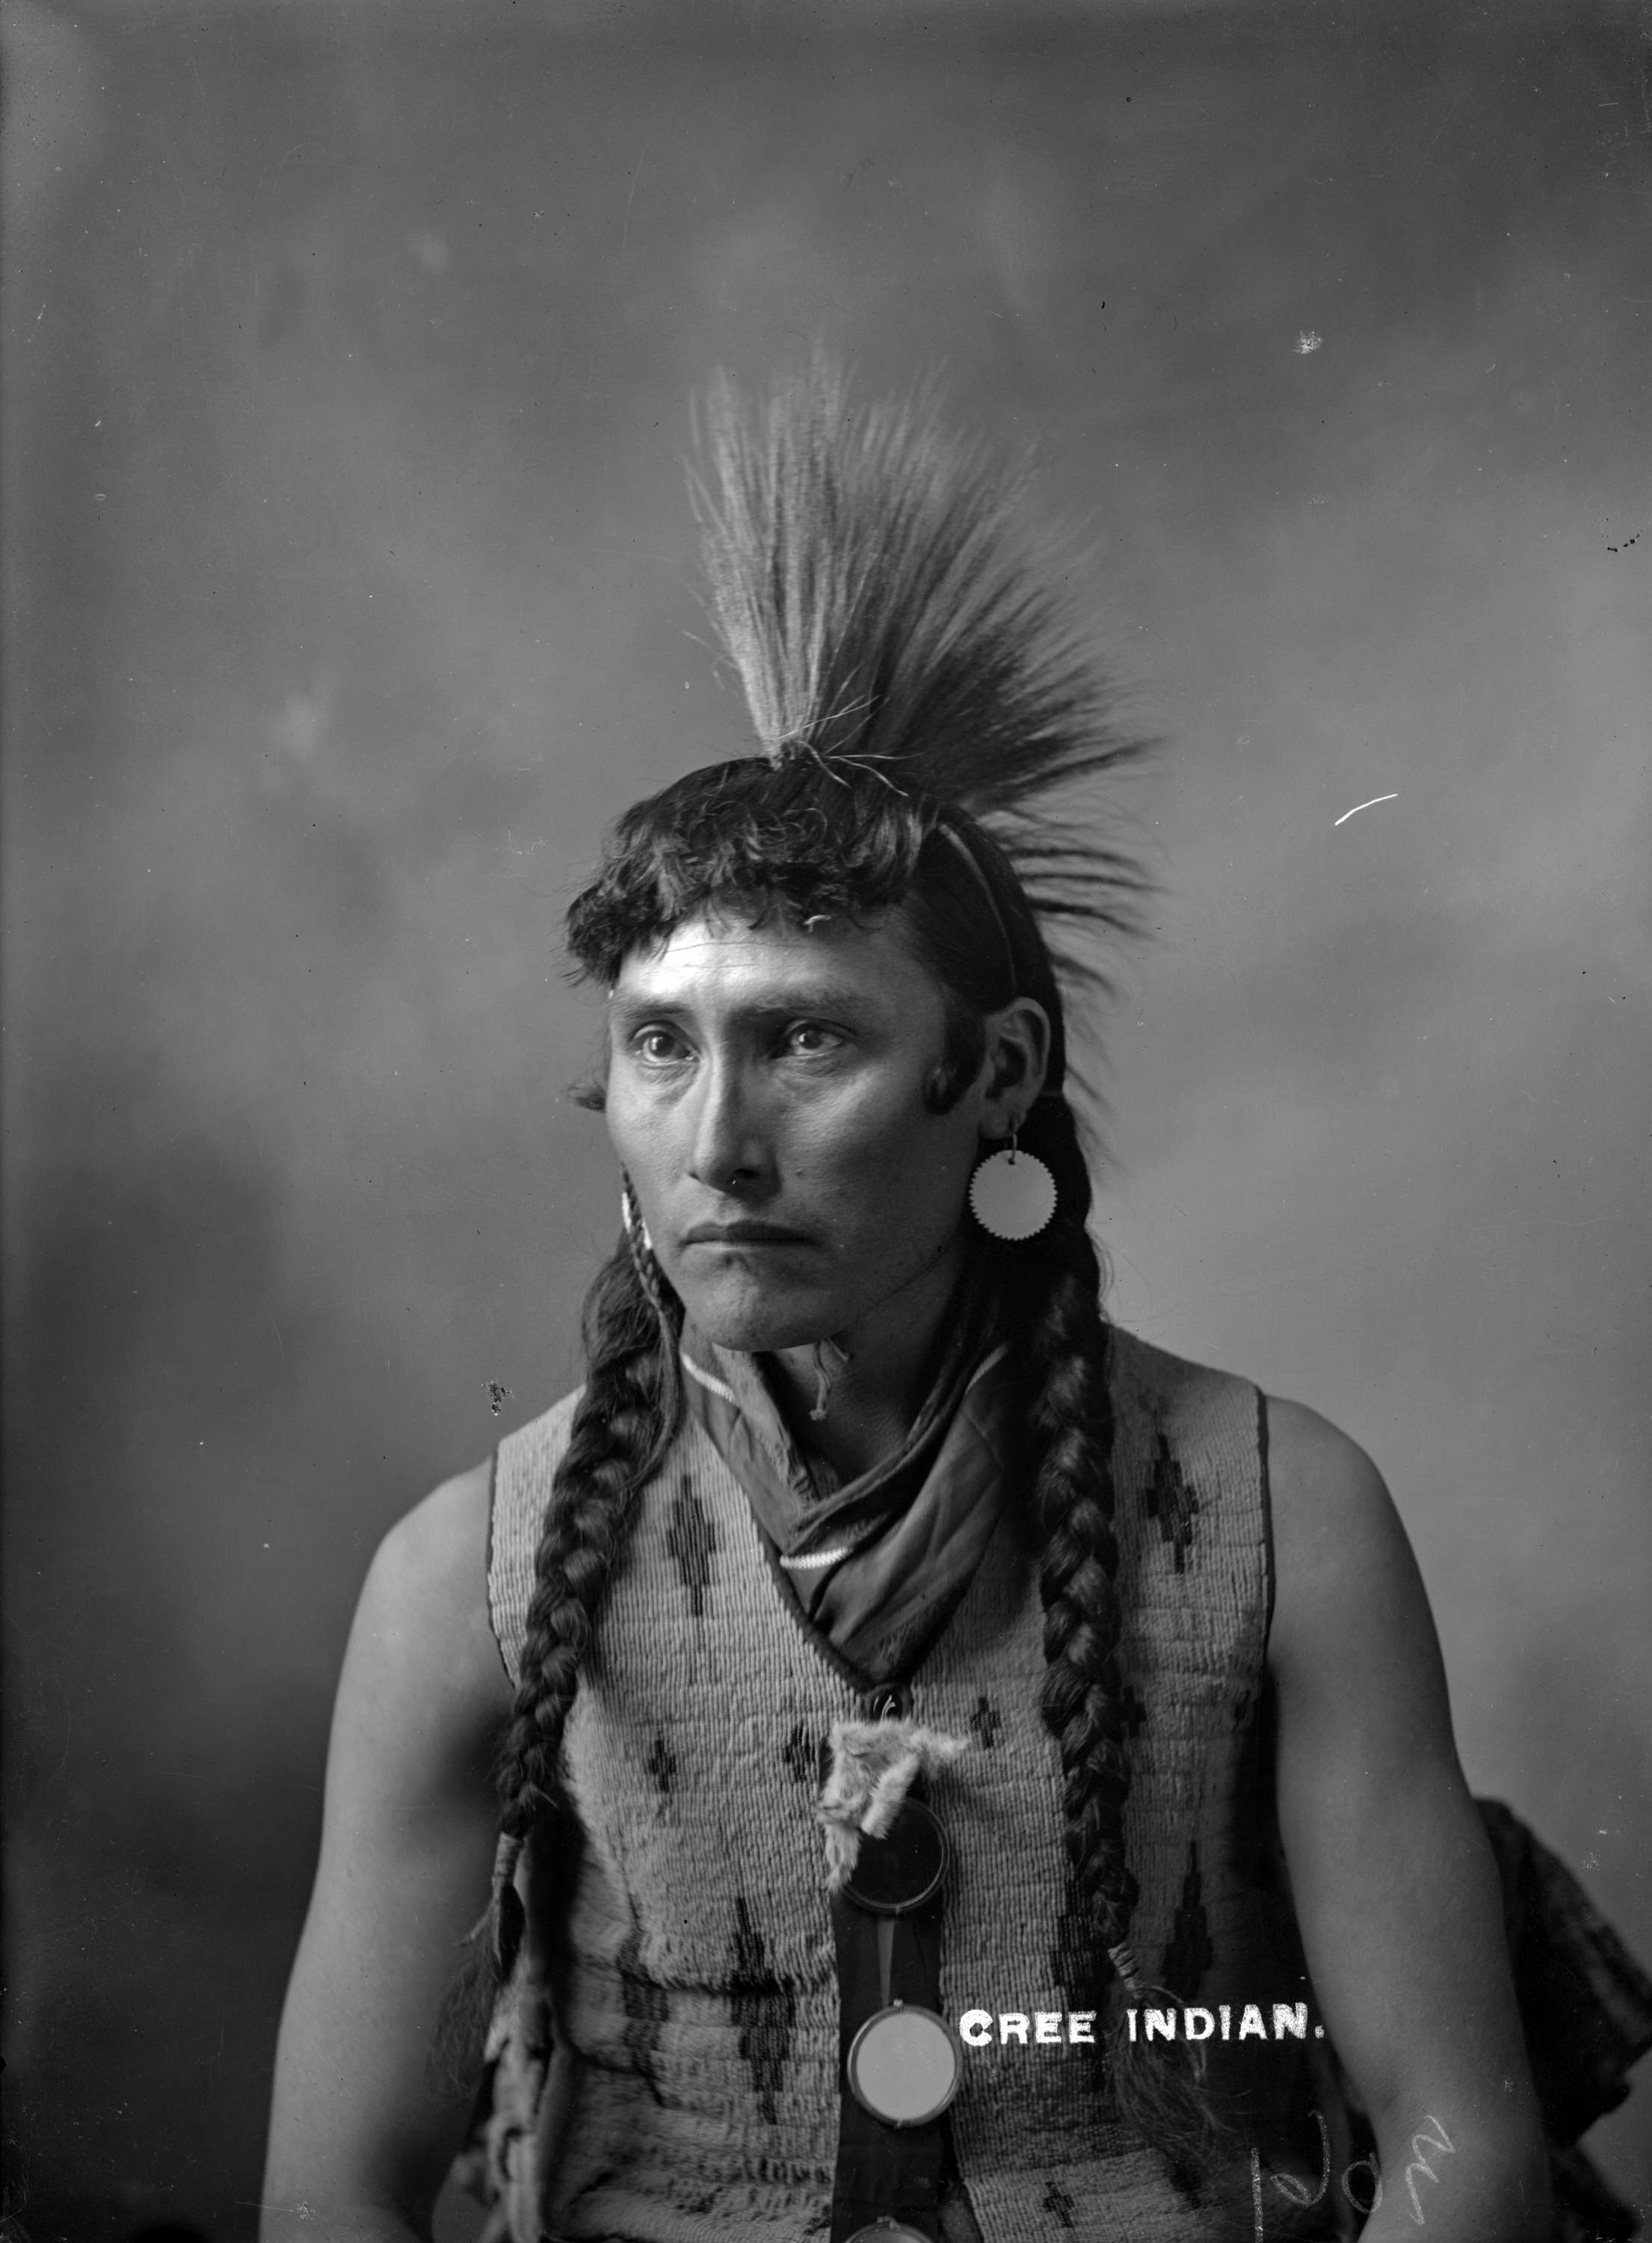 Cree Indian City Of Vancouver Archives